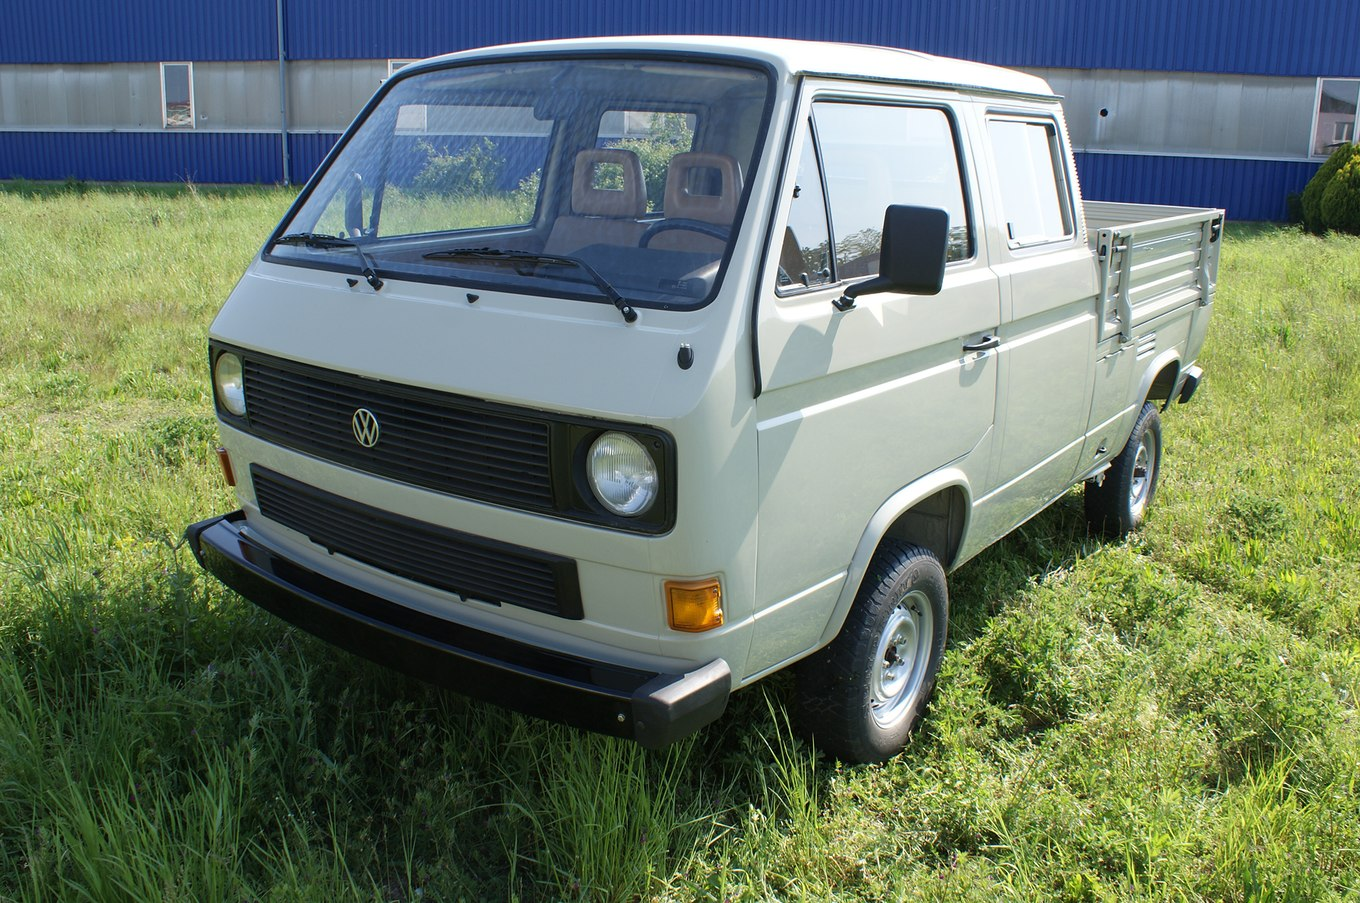 Volkswagen truck photo - 6